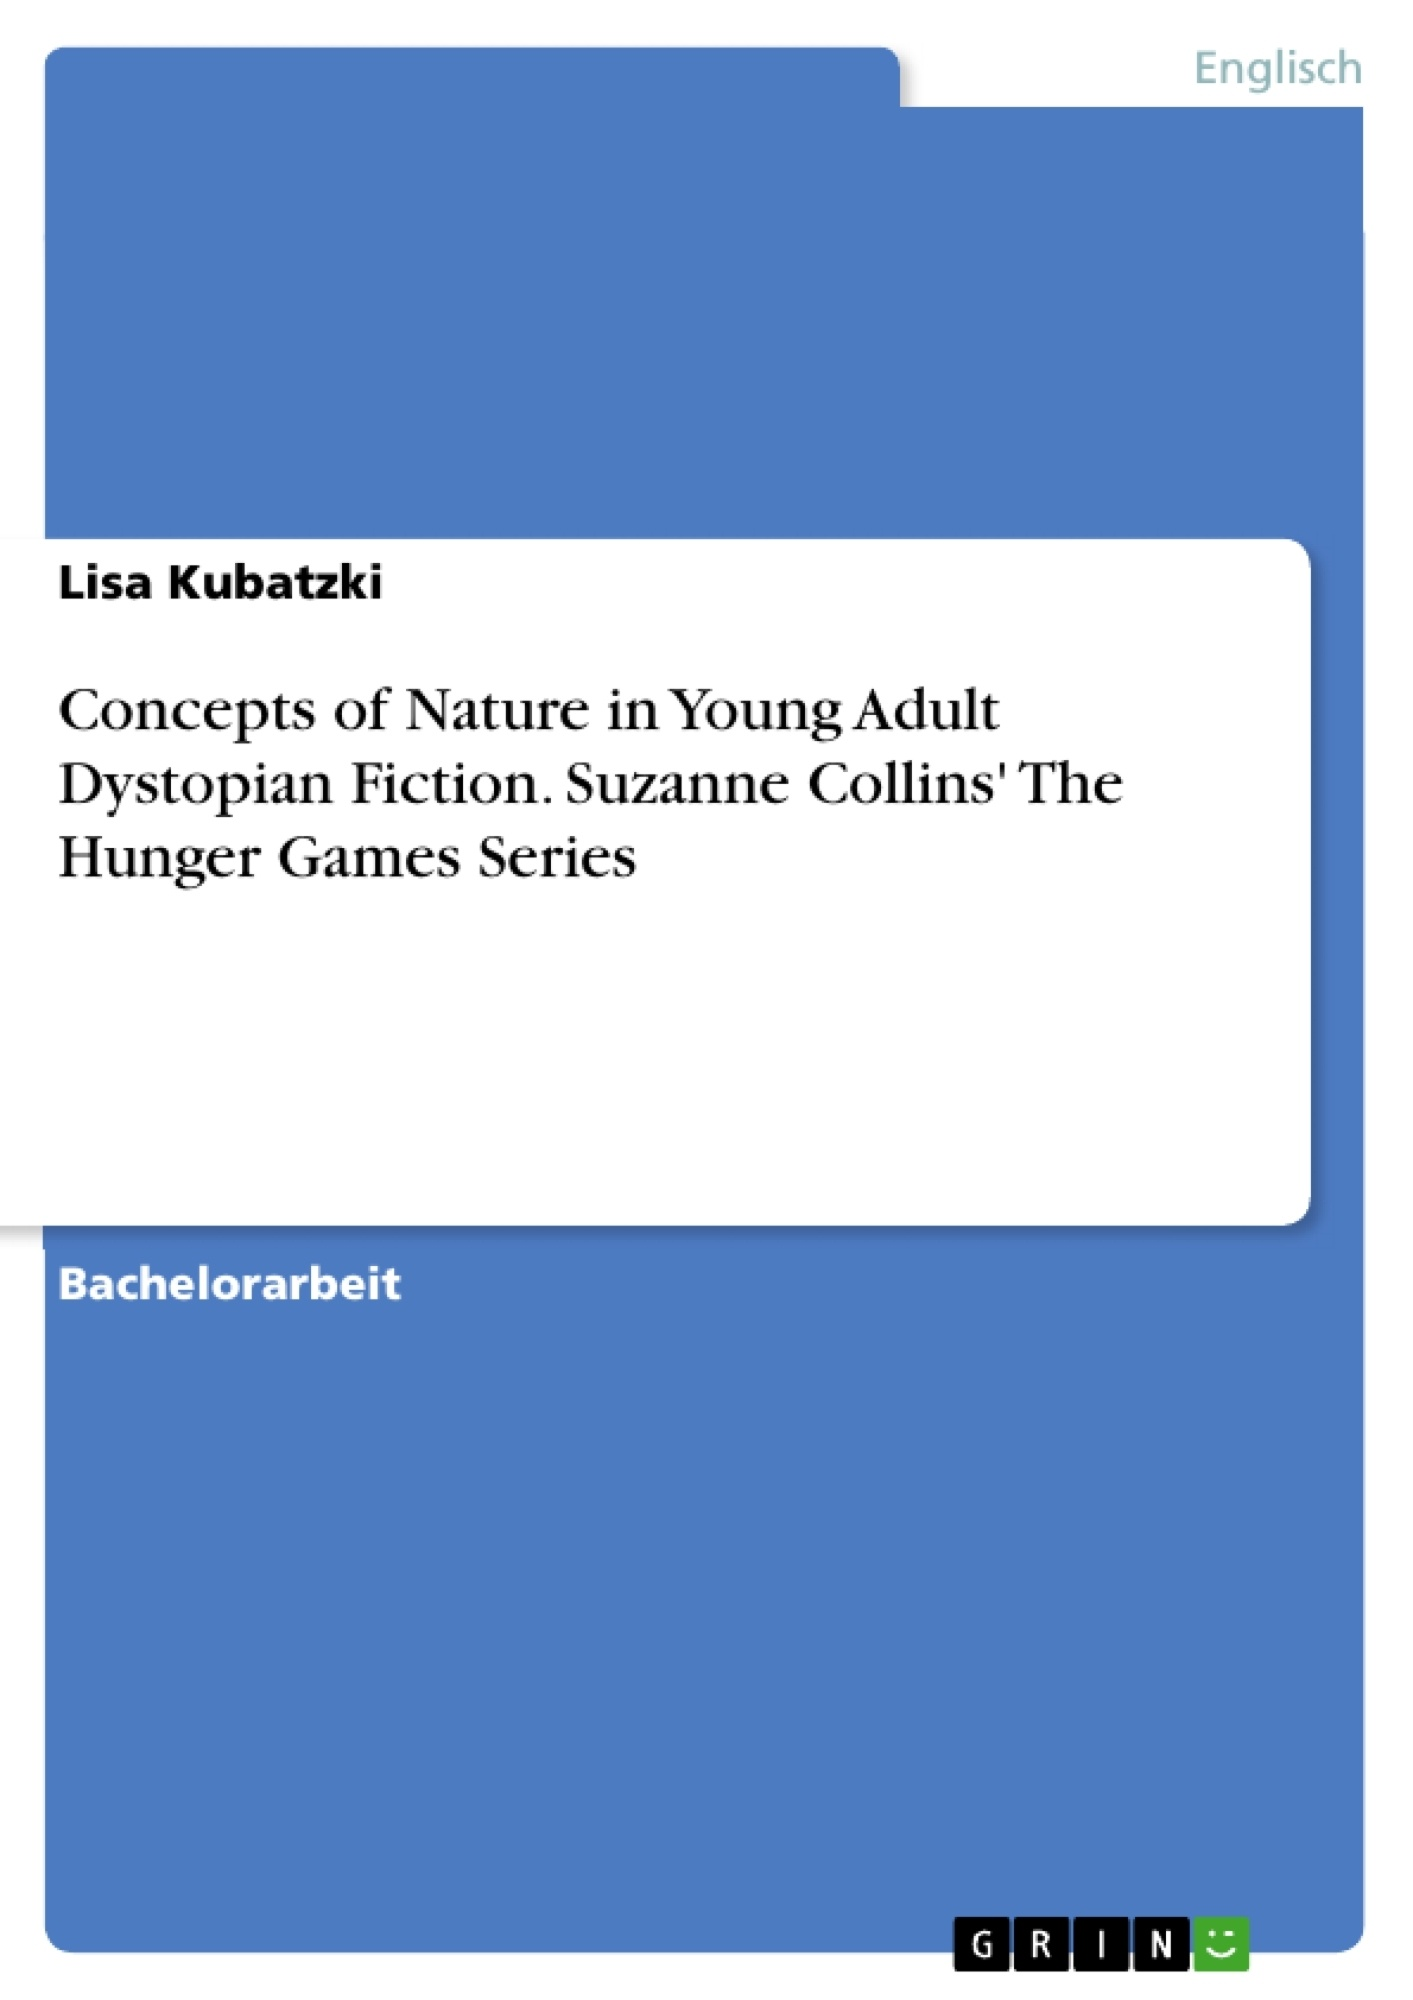 Titel: Concepts of Nature in Young Adult Dystopian Fiction. Suzanne Collins' The Hunger Games Series